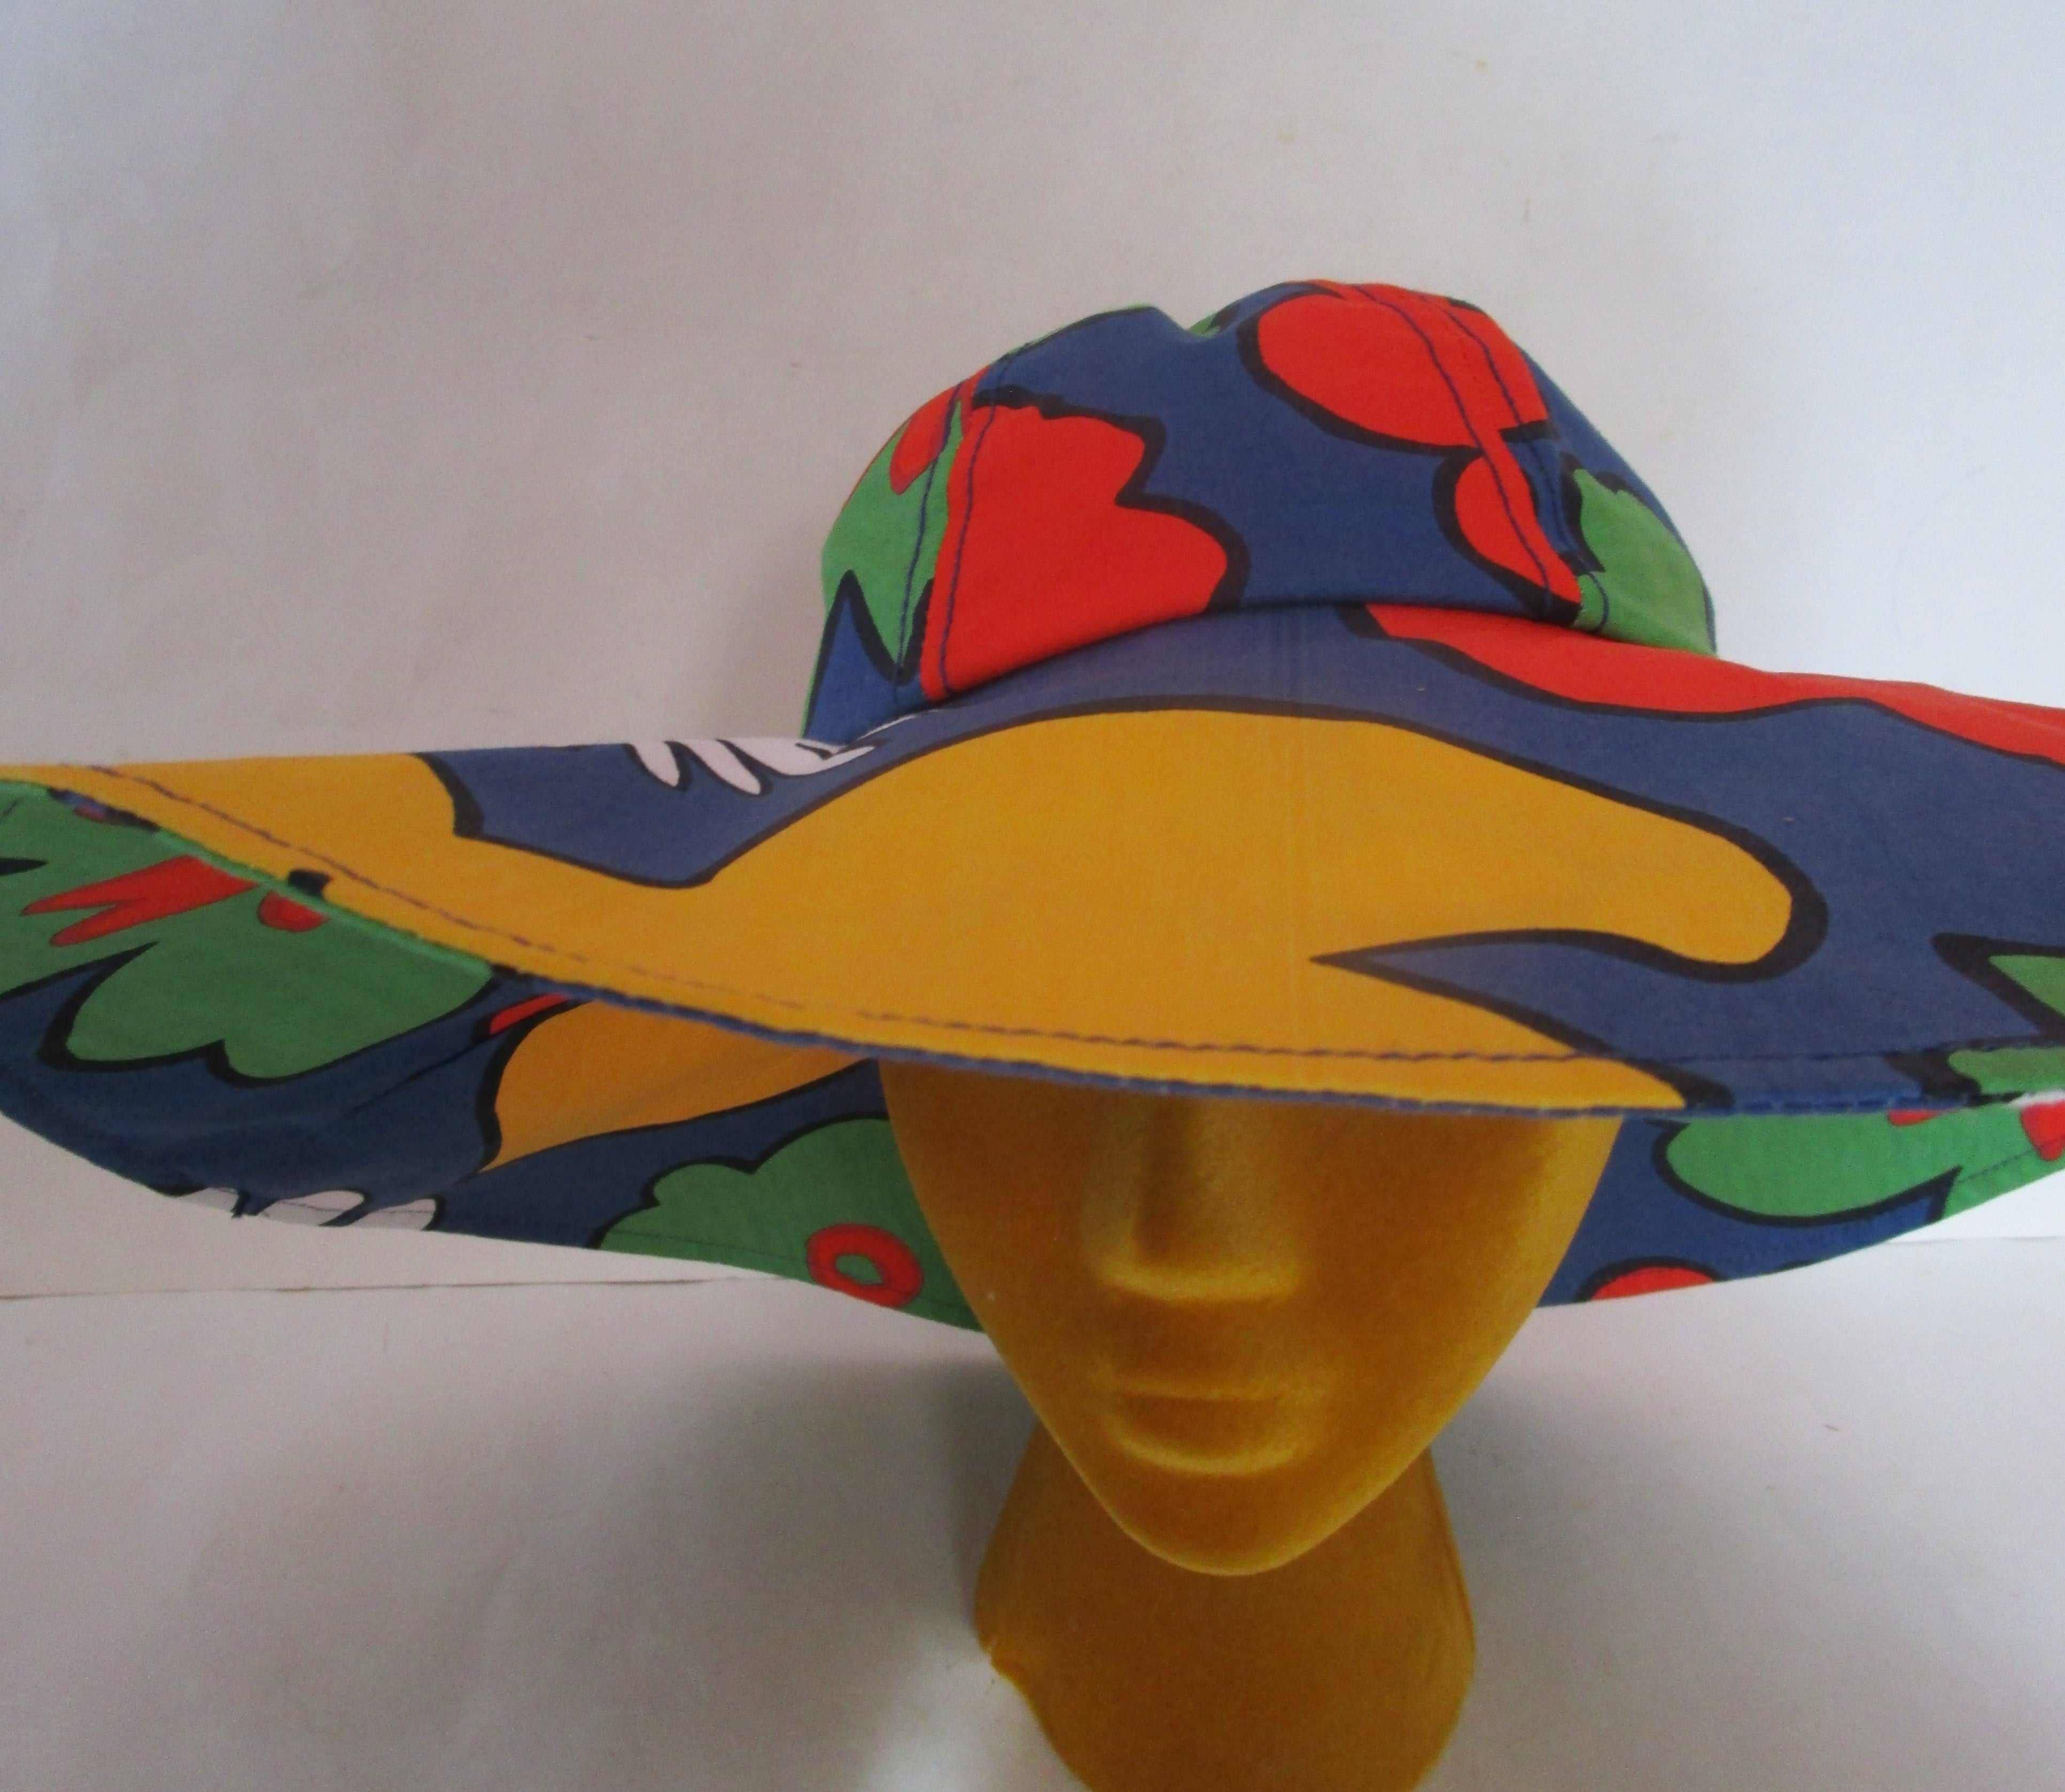 Flower Power Marimekko Floppy Packable Wide Brim Hat Sun Beach Summer